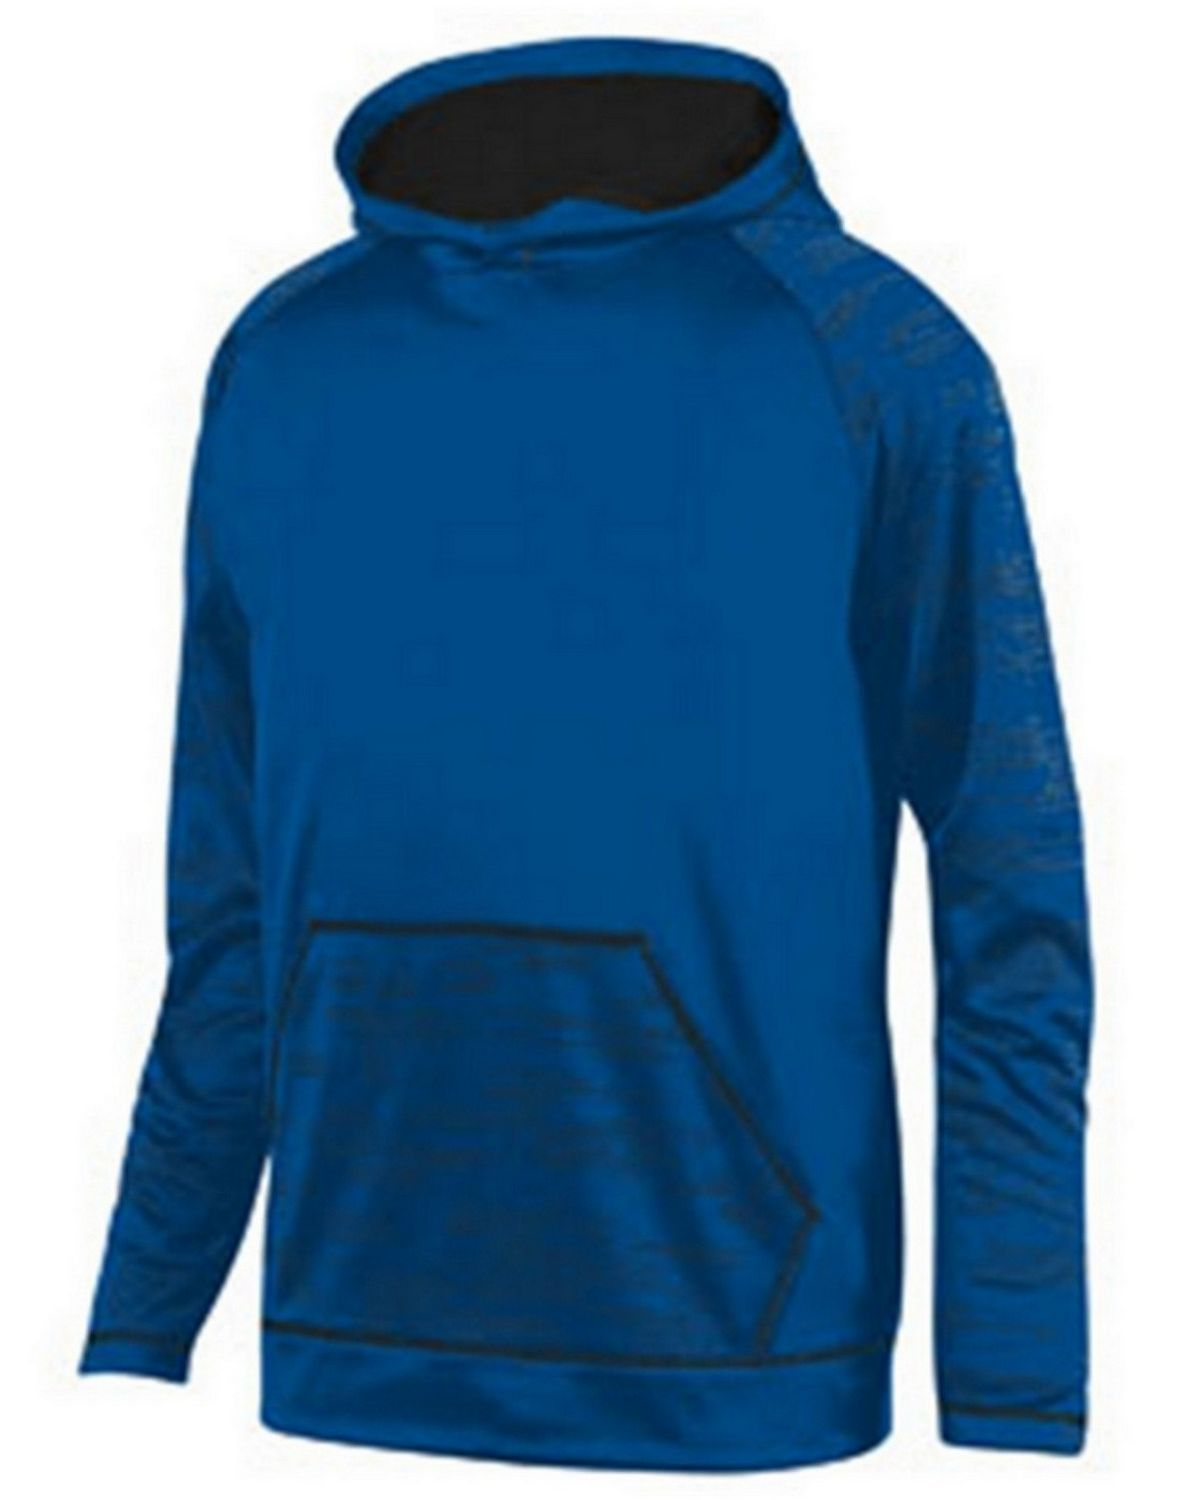 Augusta Sportswear 5532 Adult Sleet Hoody - Royal/ Black - M 5532